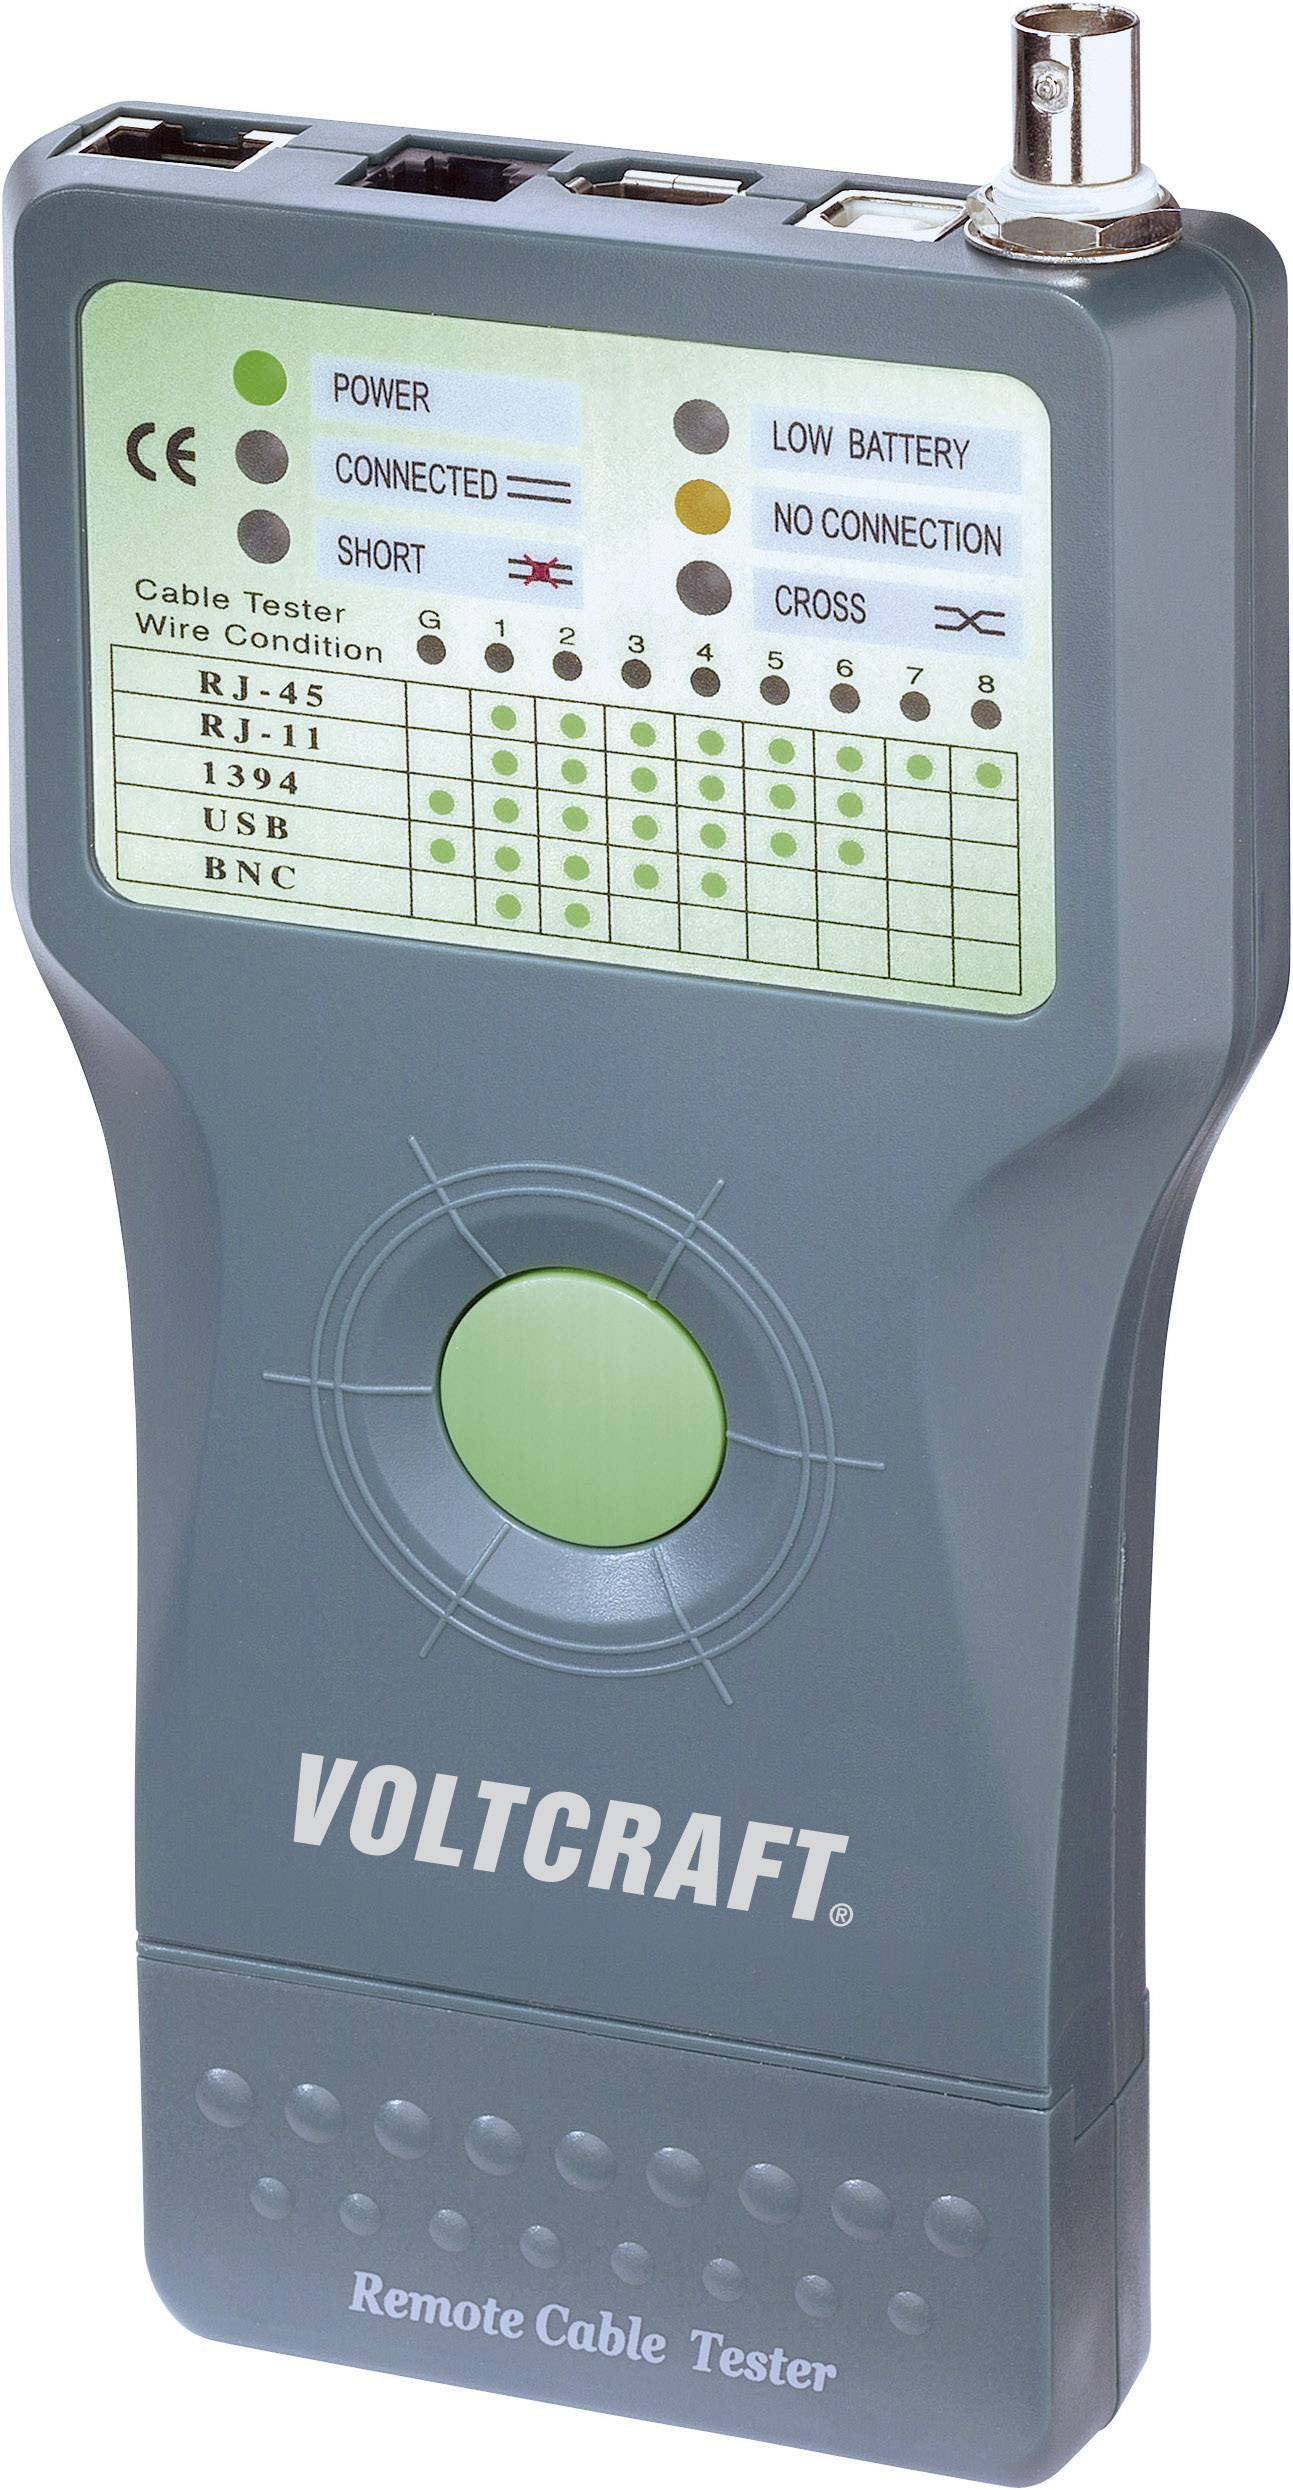 VOLTCRAFT/® CT-5/ Cable Tester Tool for Verification Suitable for RJ-45/ BNC Cable Tester RJ-11/ IEE 1394/ USB Cables